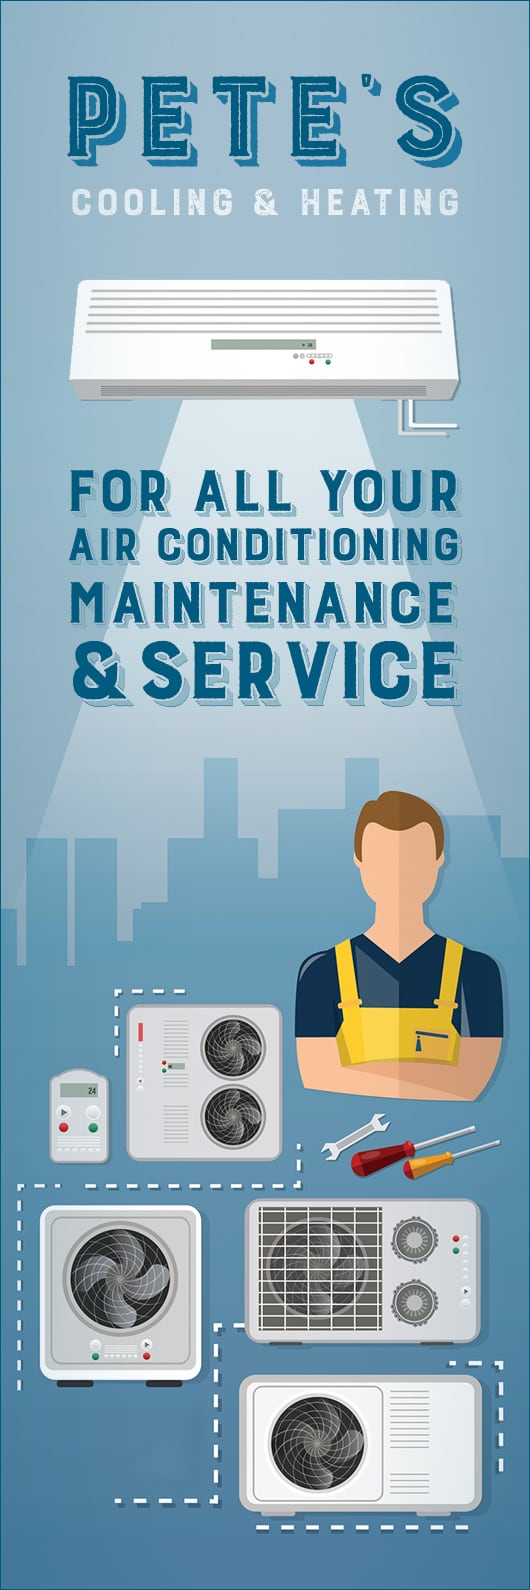 Pete S Cooling Heating Home Air Conditioning 322 Brookfield